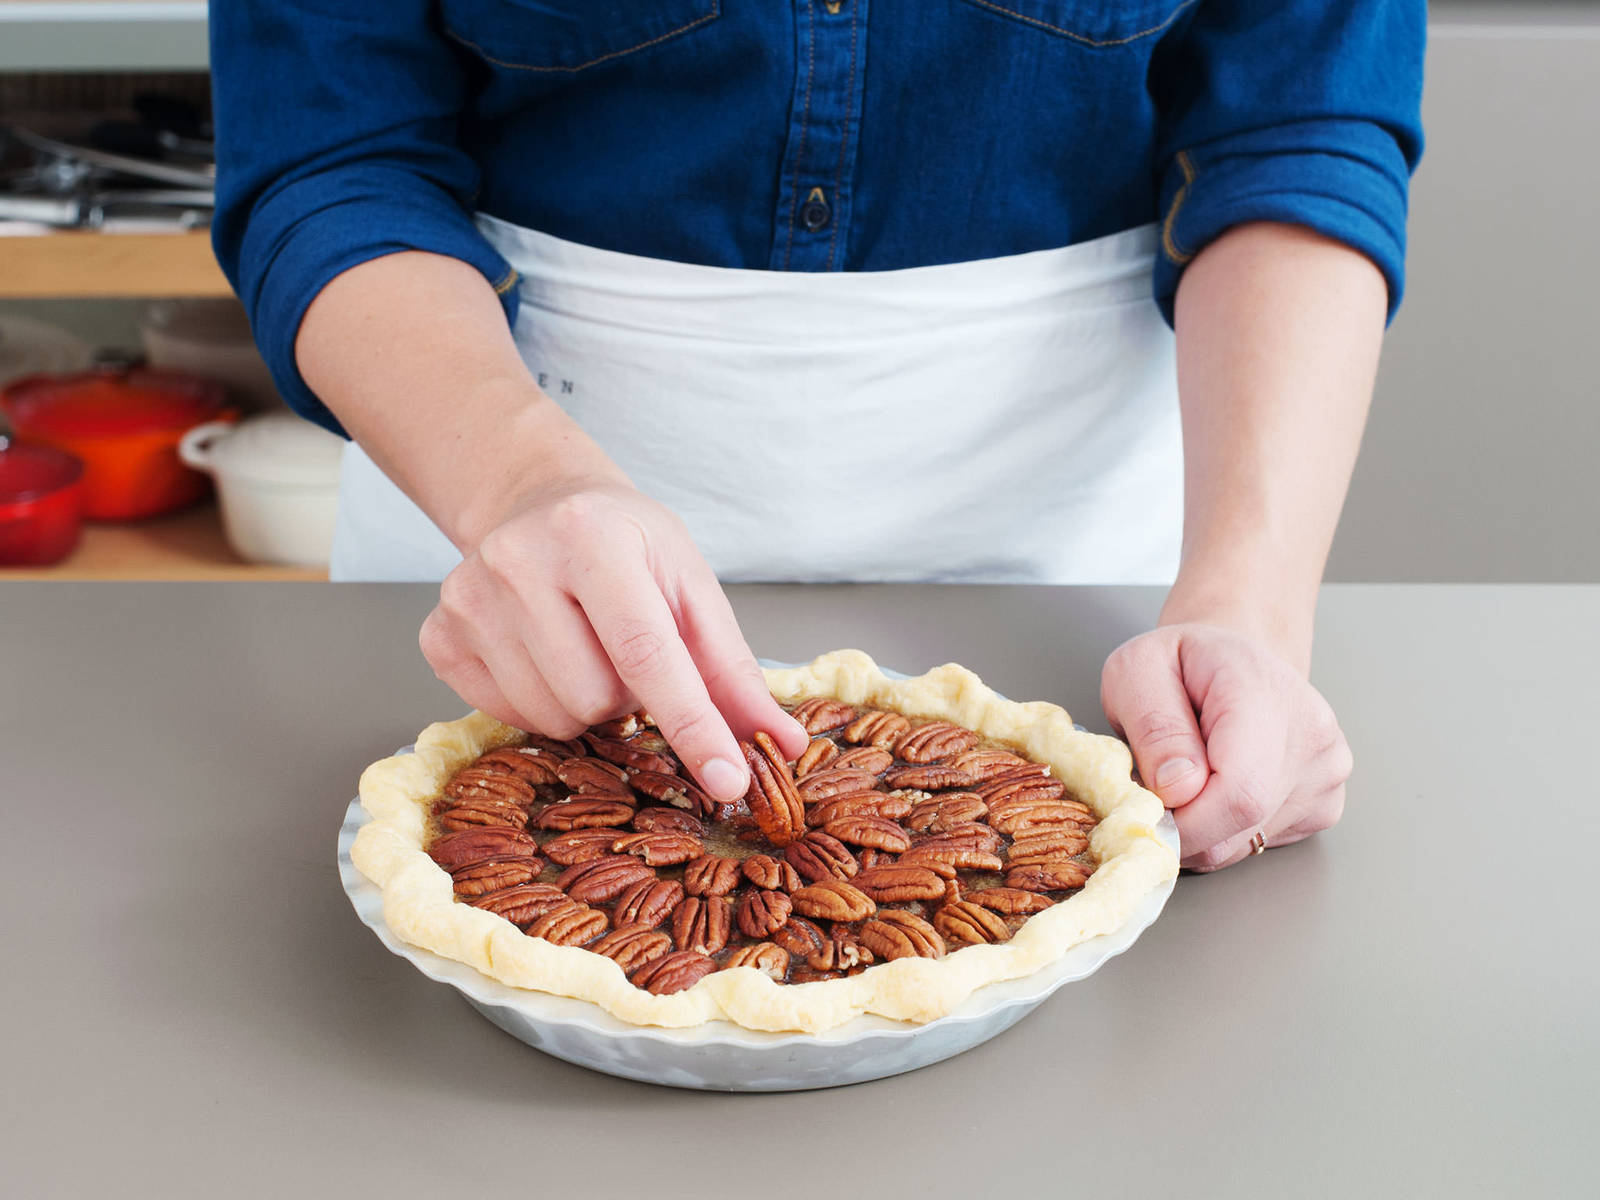 If desired, garnish the top of the pie with more pecans, arranged in concentric circles, for a more refined look. Turn oven temperature down to 175°C/350°F and bake pie for approx. 45 – 55 min., or until the filling is firm to the touch but still jiggles slightly. Let cool to room temperature before serving. Serve with vanilla ice cream or whipped cream. Enjoy!